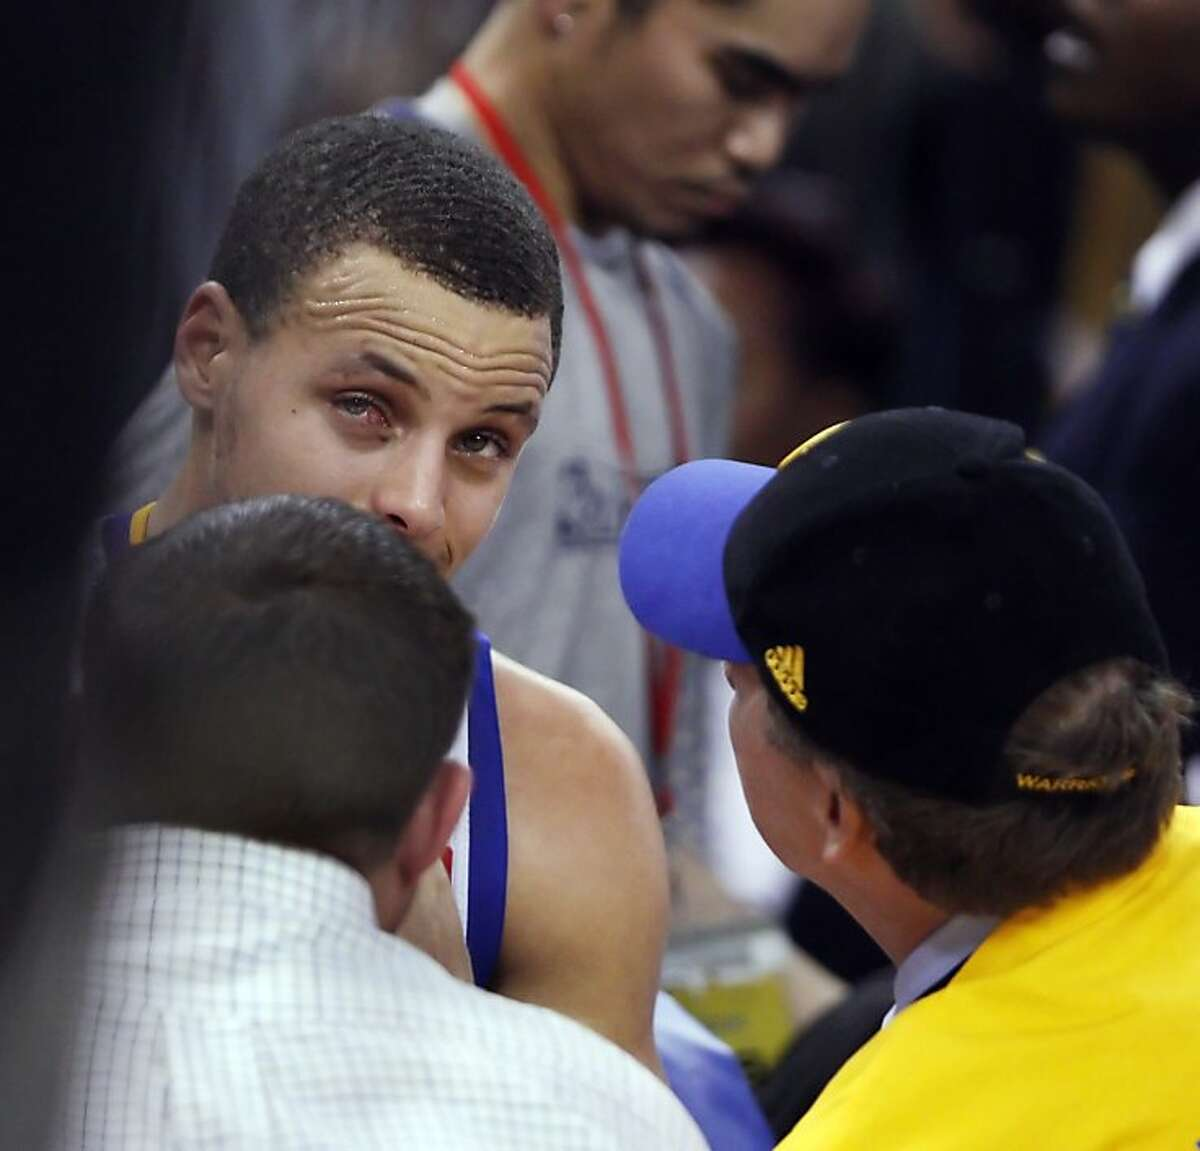 Stephen Curry's eye is examined by team personell in the second half. The Golden State Warriors played the Denver Nuggets in Game 4 of the first round of the NBA playoffs at Oracle Arena in Oakland, Calif., on Sunday, April 28, 2013.